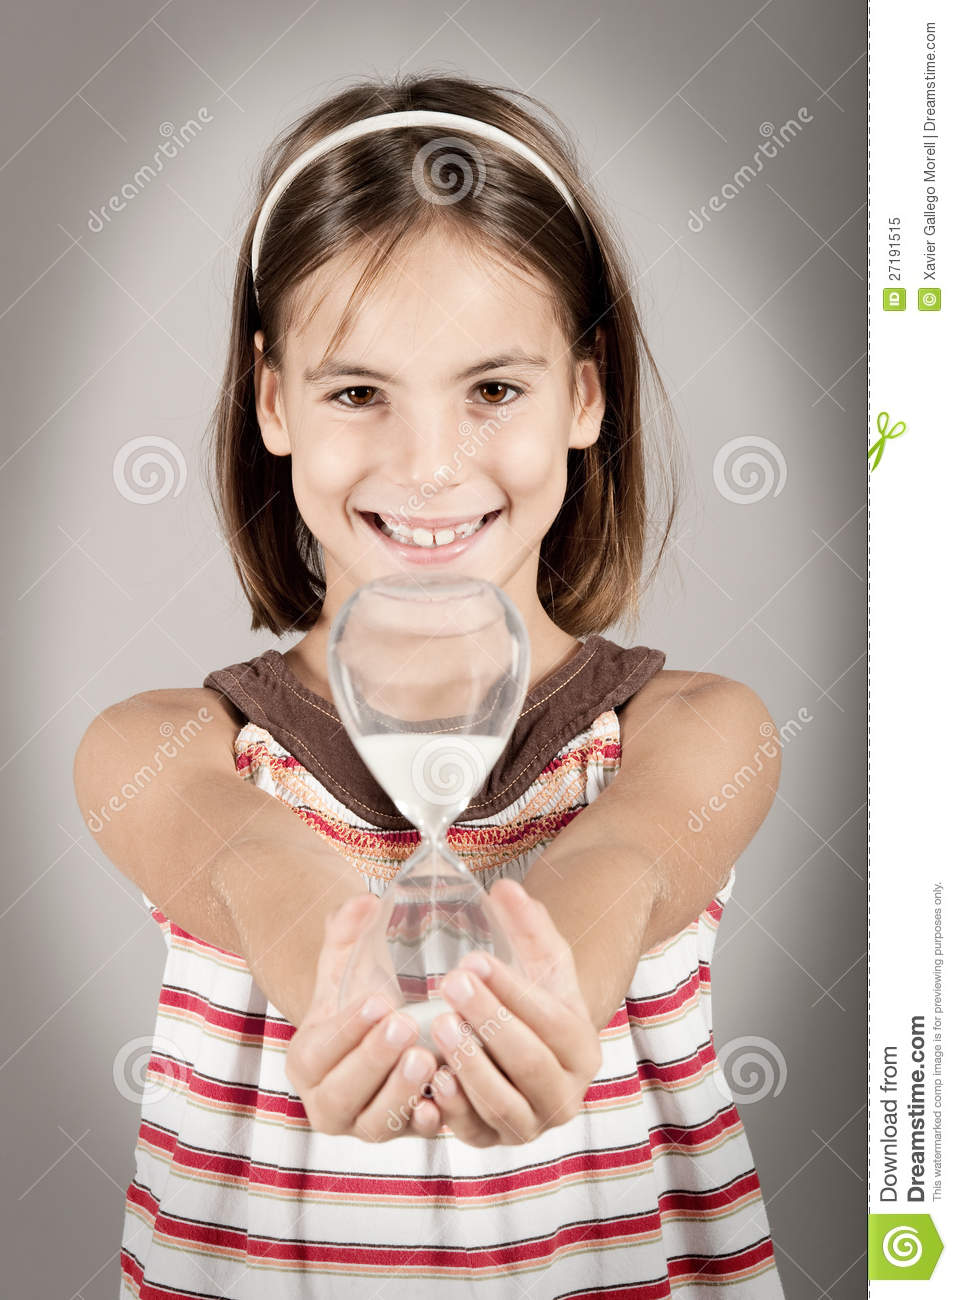 Business Woman Holding Hourglass Stock Image - Image of